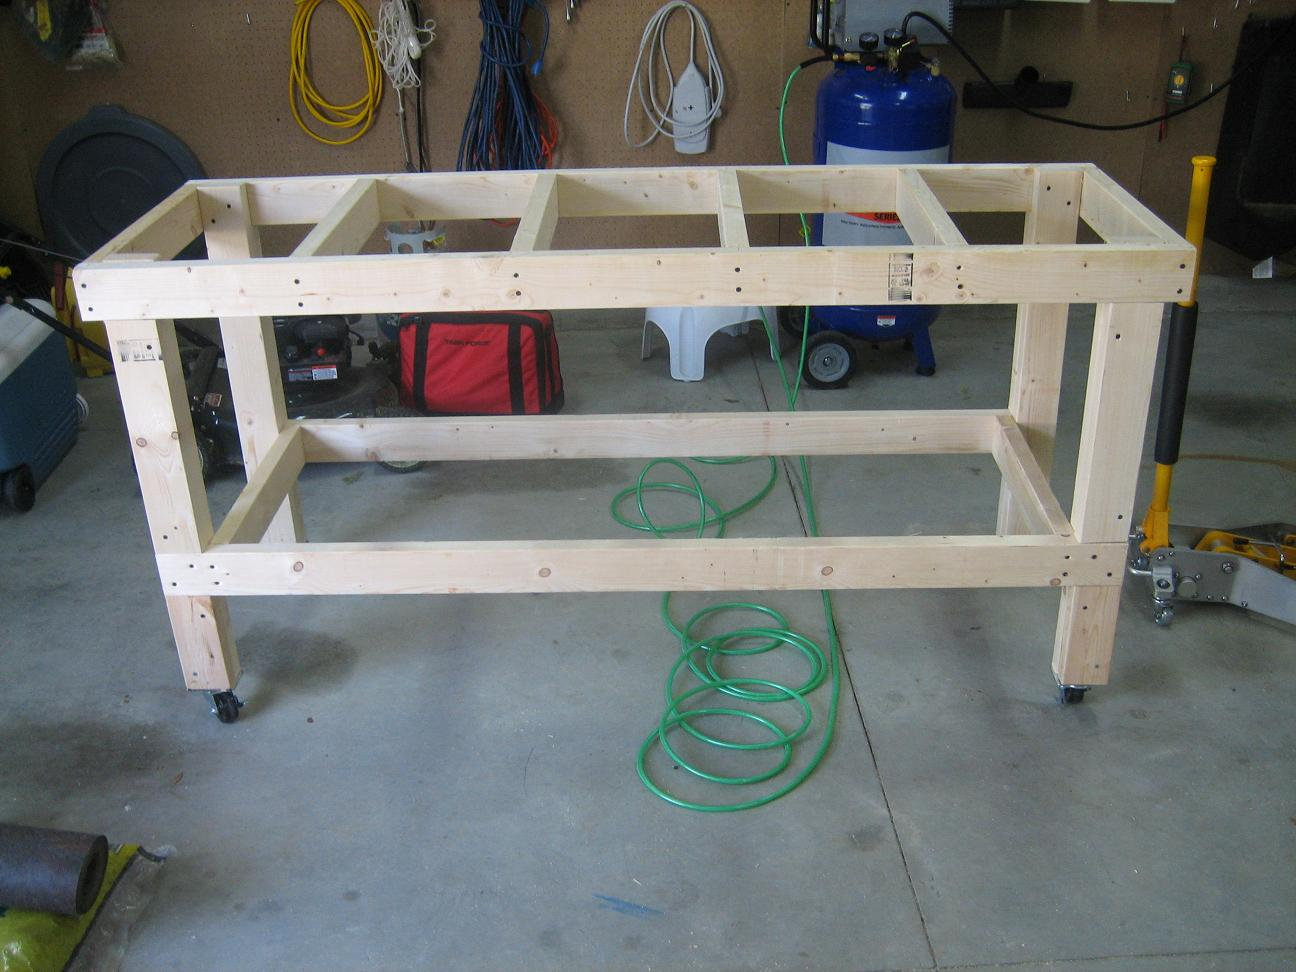 Easy to build workbench - Woodworking for engineers